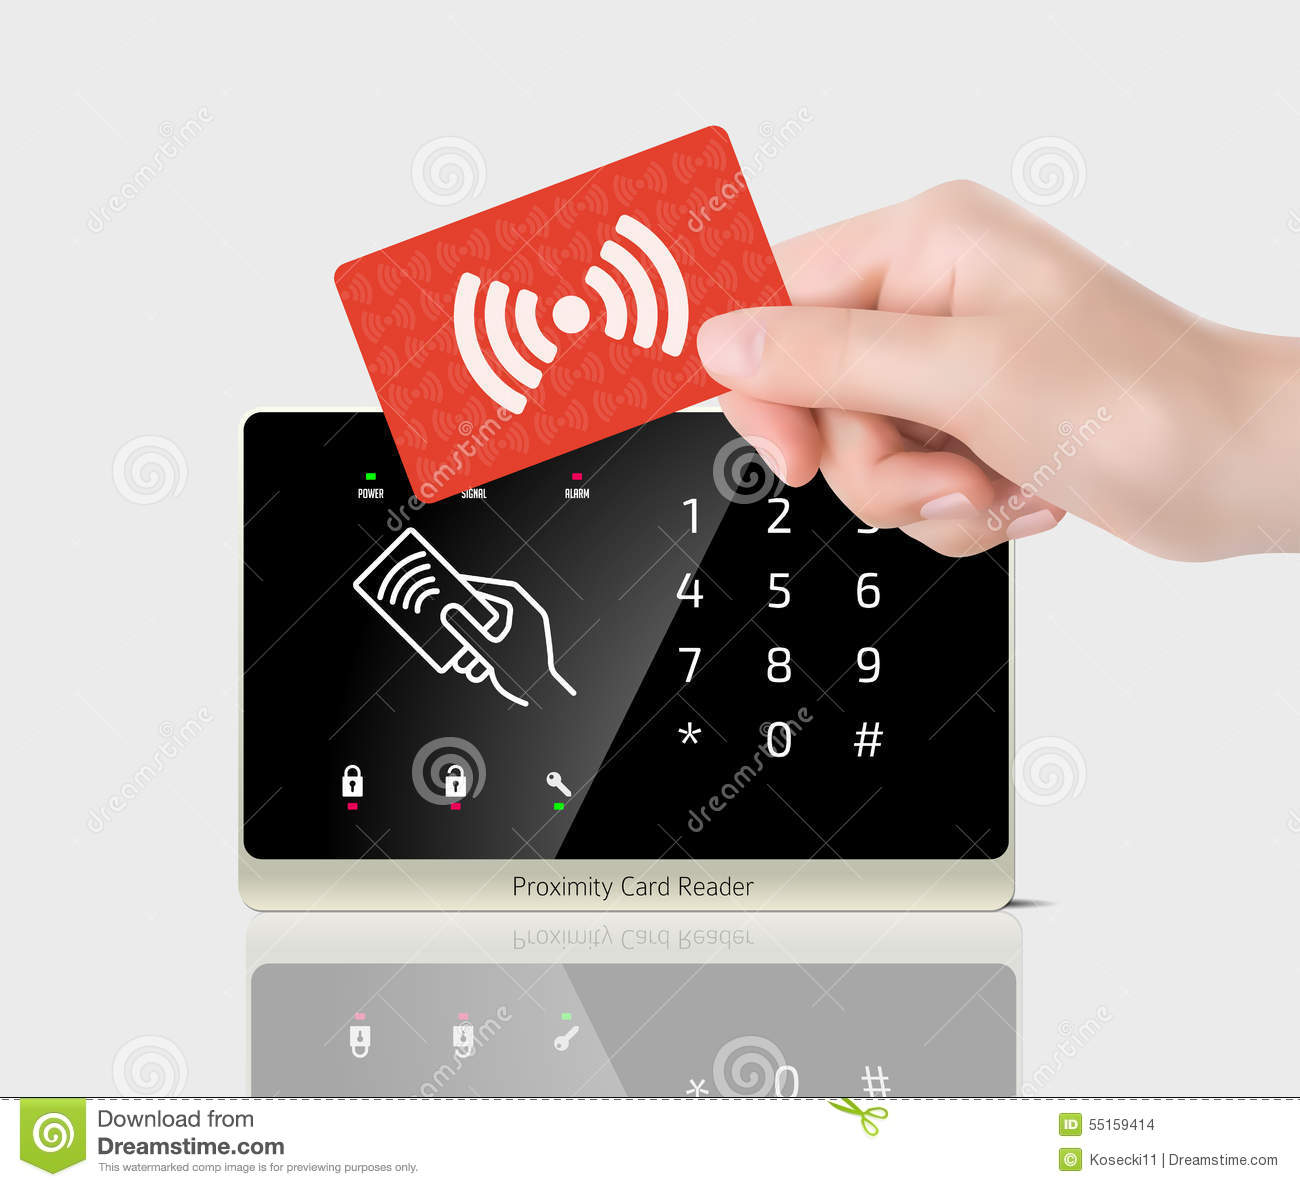 Access Control Proximity Card And Reader Stock